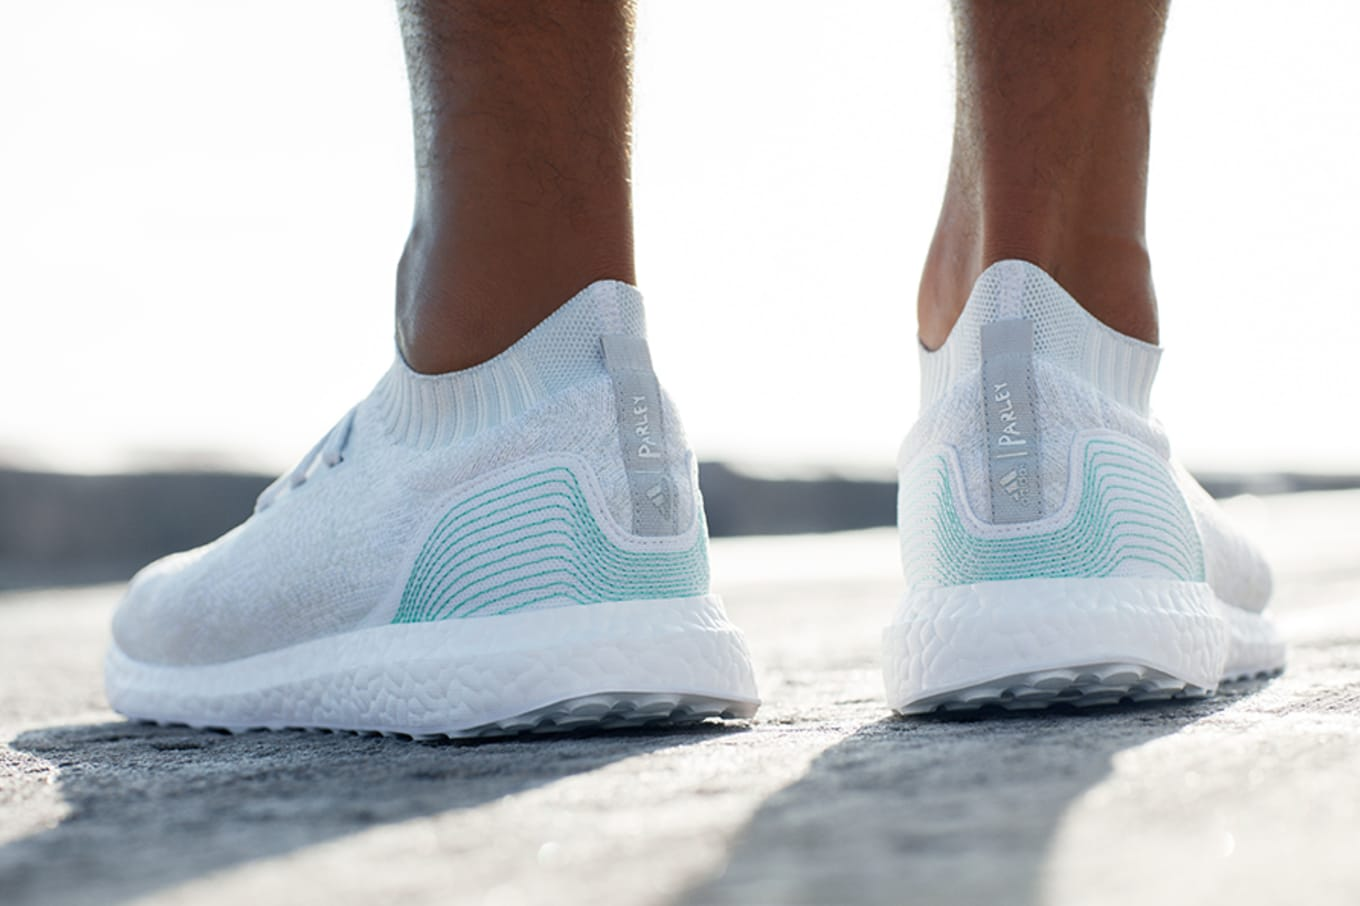 92f5dfa8f Release info for the Parley x Adidas Ultra Boost Uncaged.